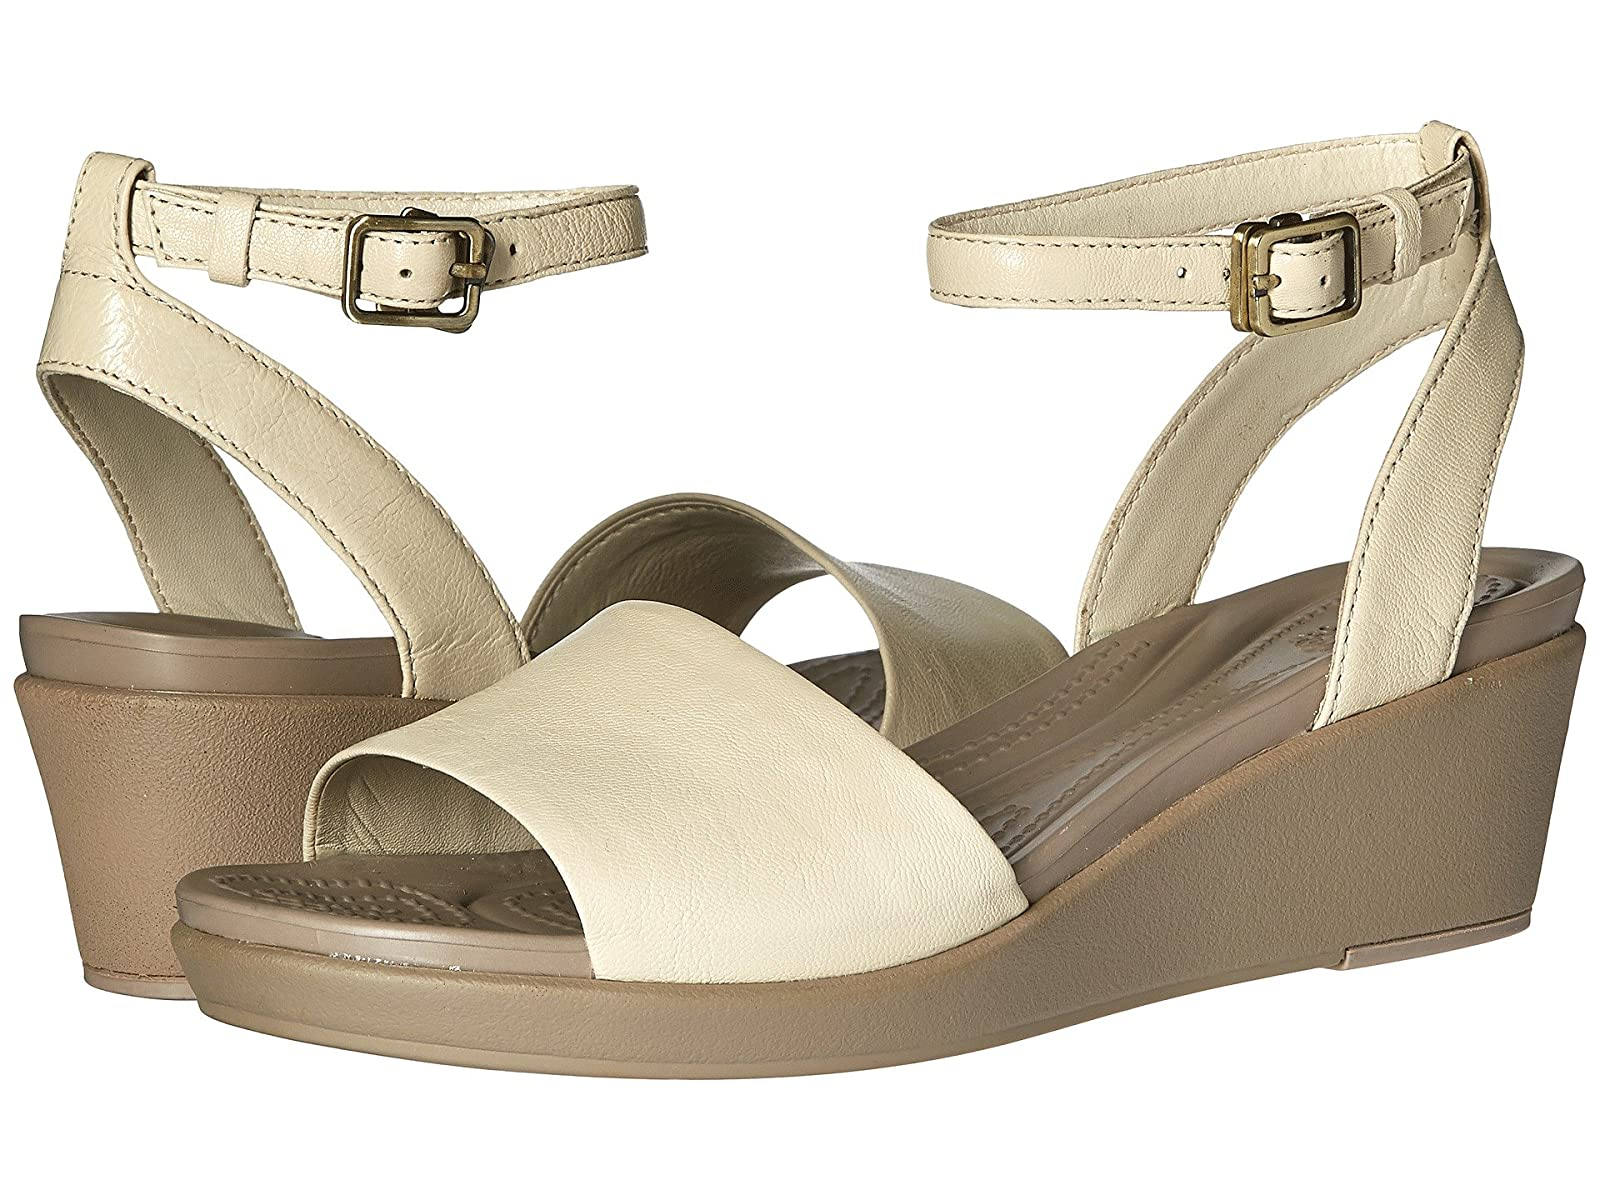 Crocs Leigh-Ann Ankle Strap LeatherCheap and distinctive eye-catching shoes